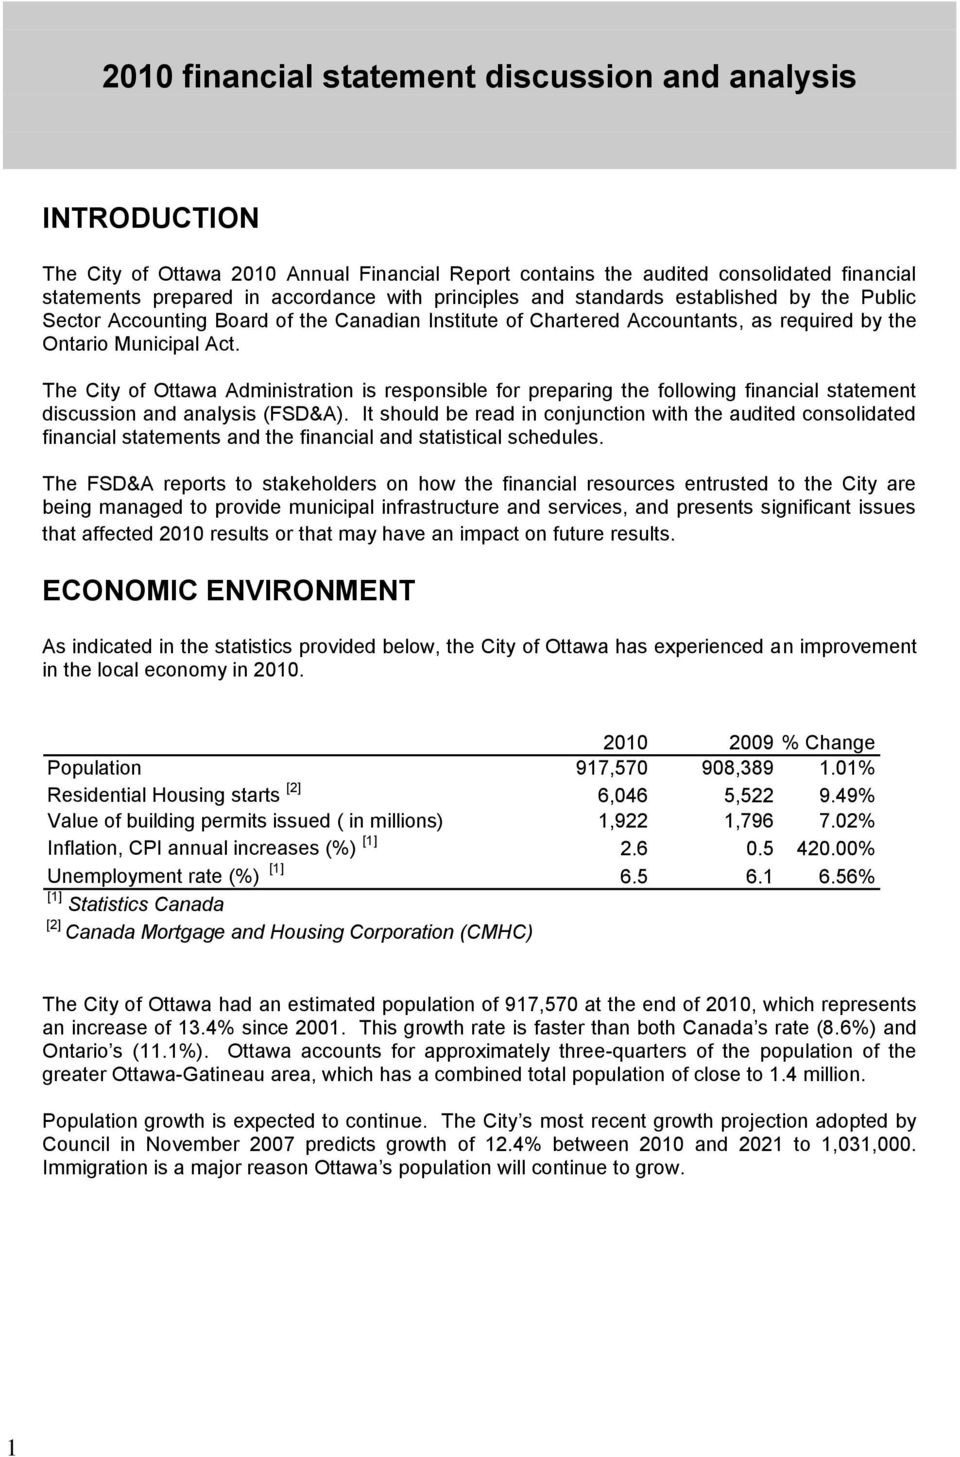 The City of Ottawa Administration is responsible for preparing the following financial statement discussion and analysis (FSD&A).